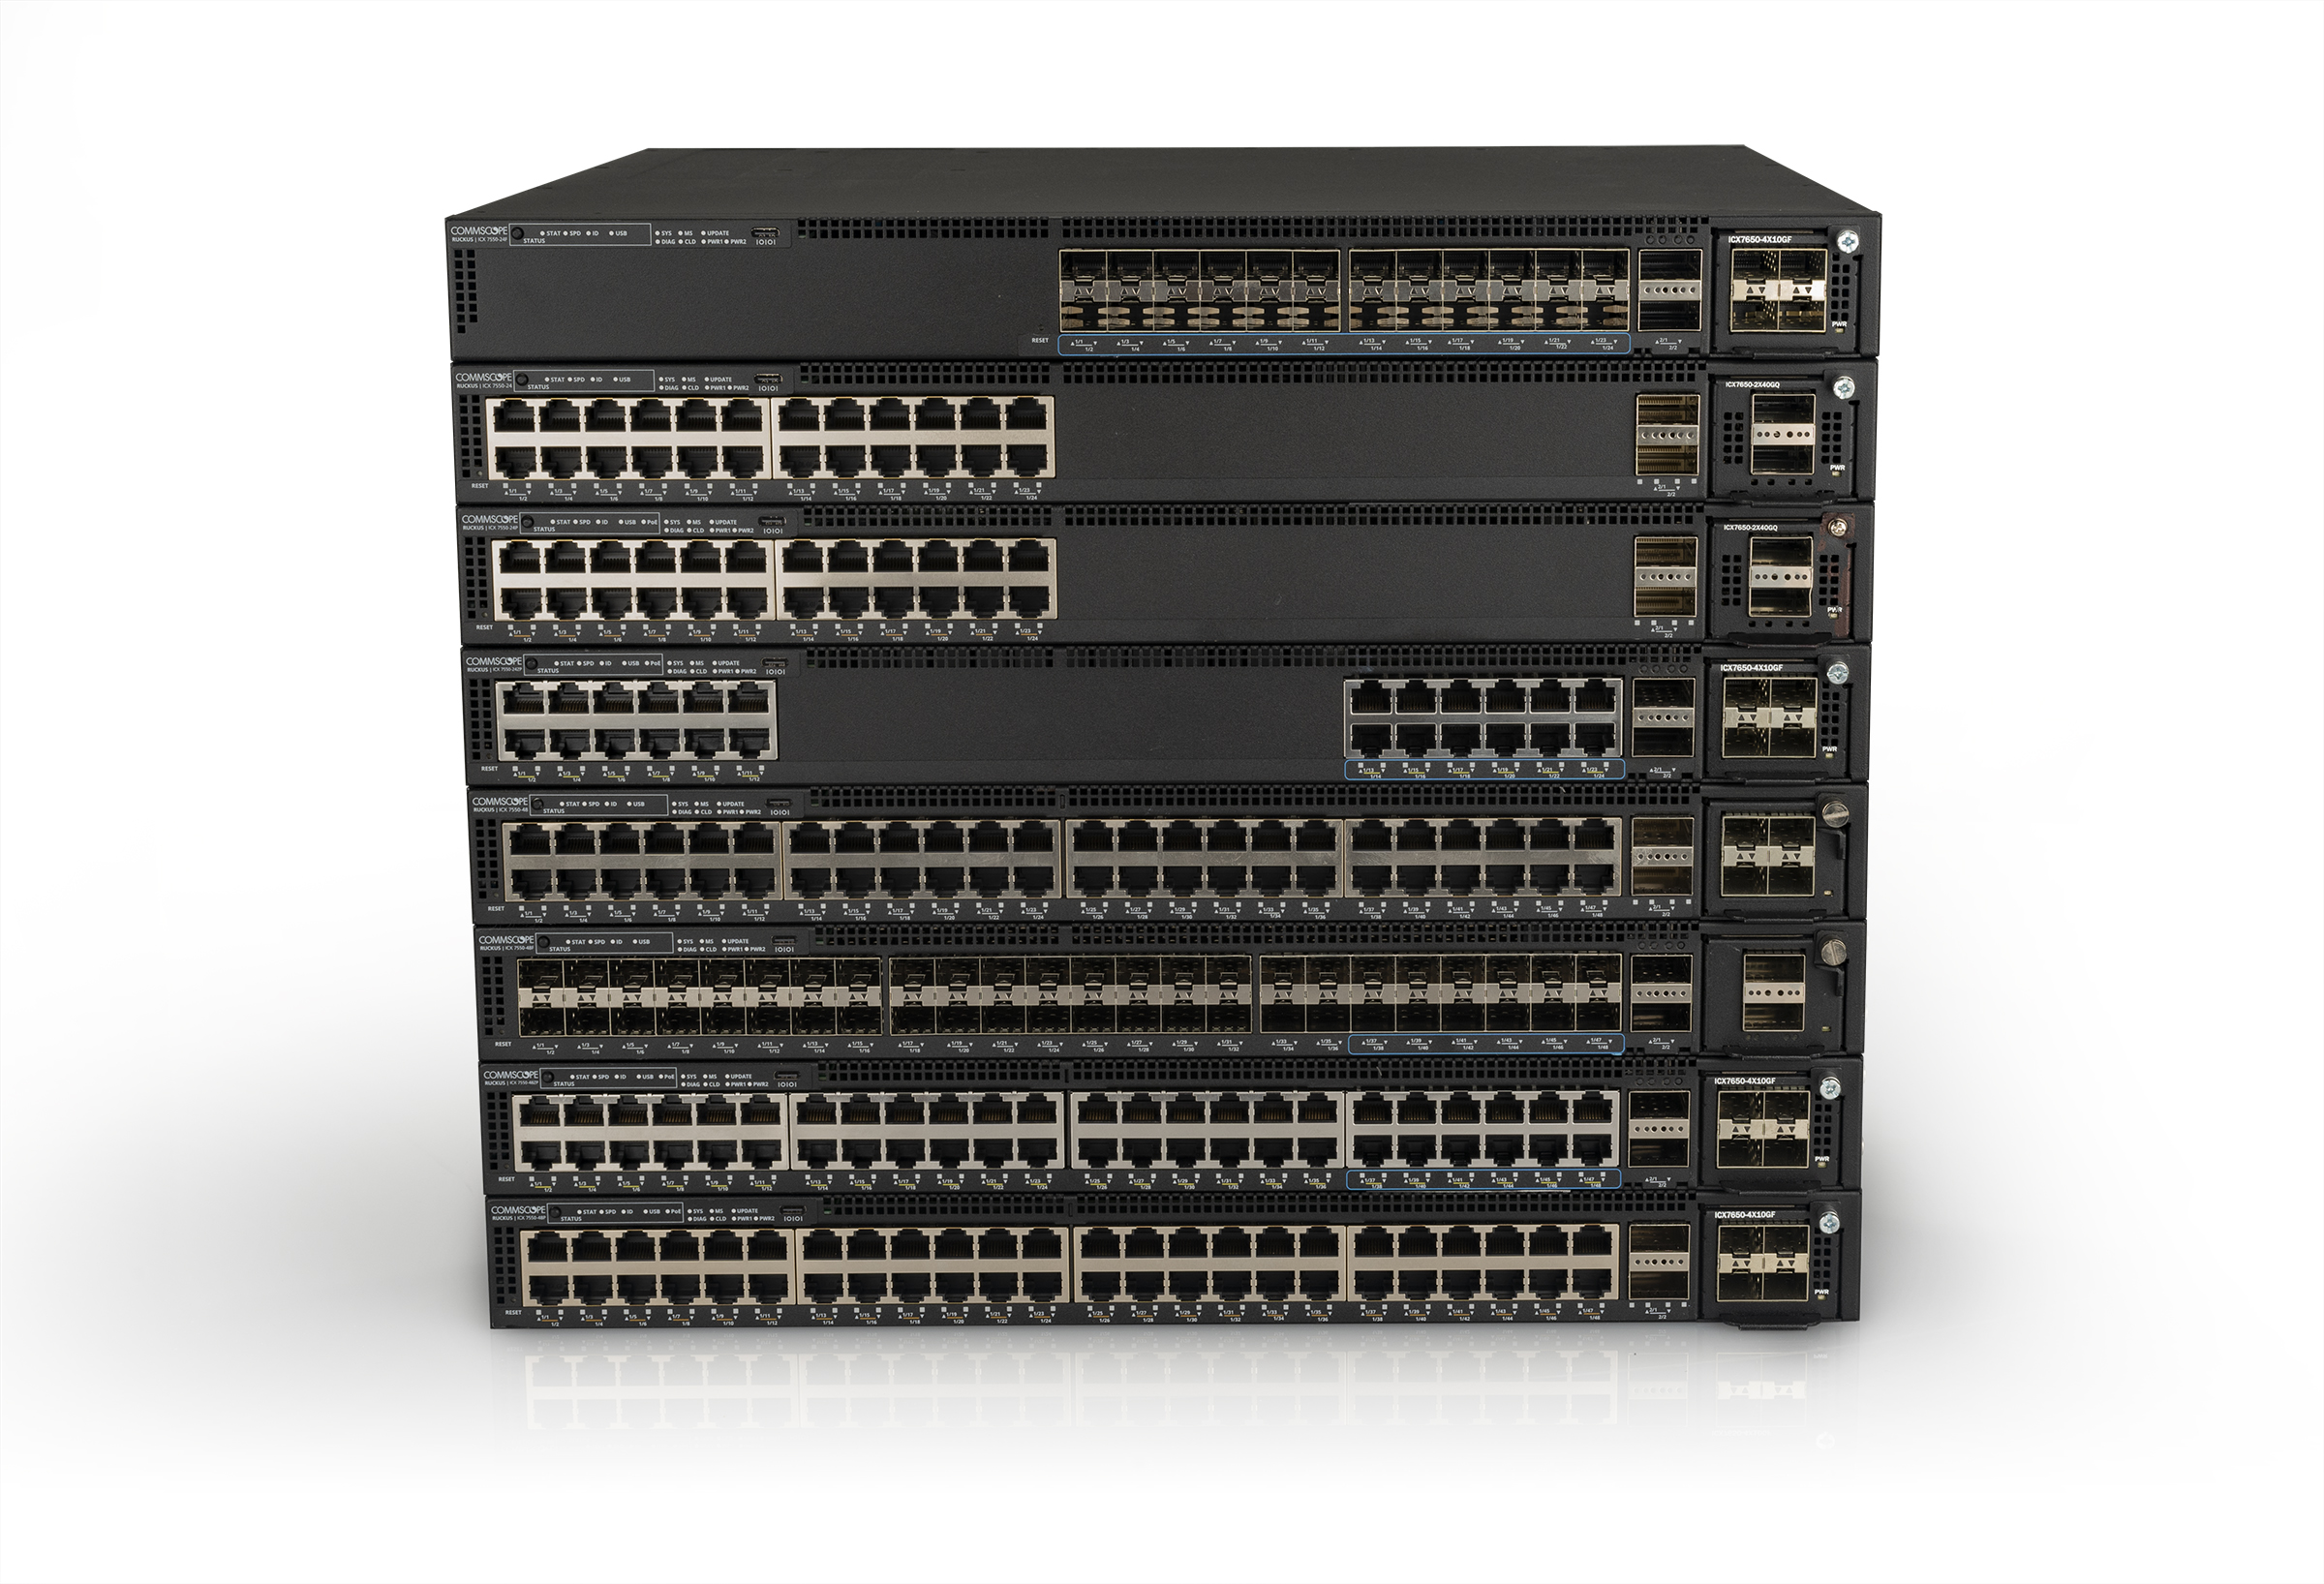 ICX7550 Switches - front image